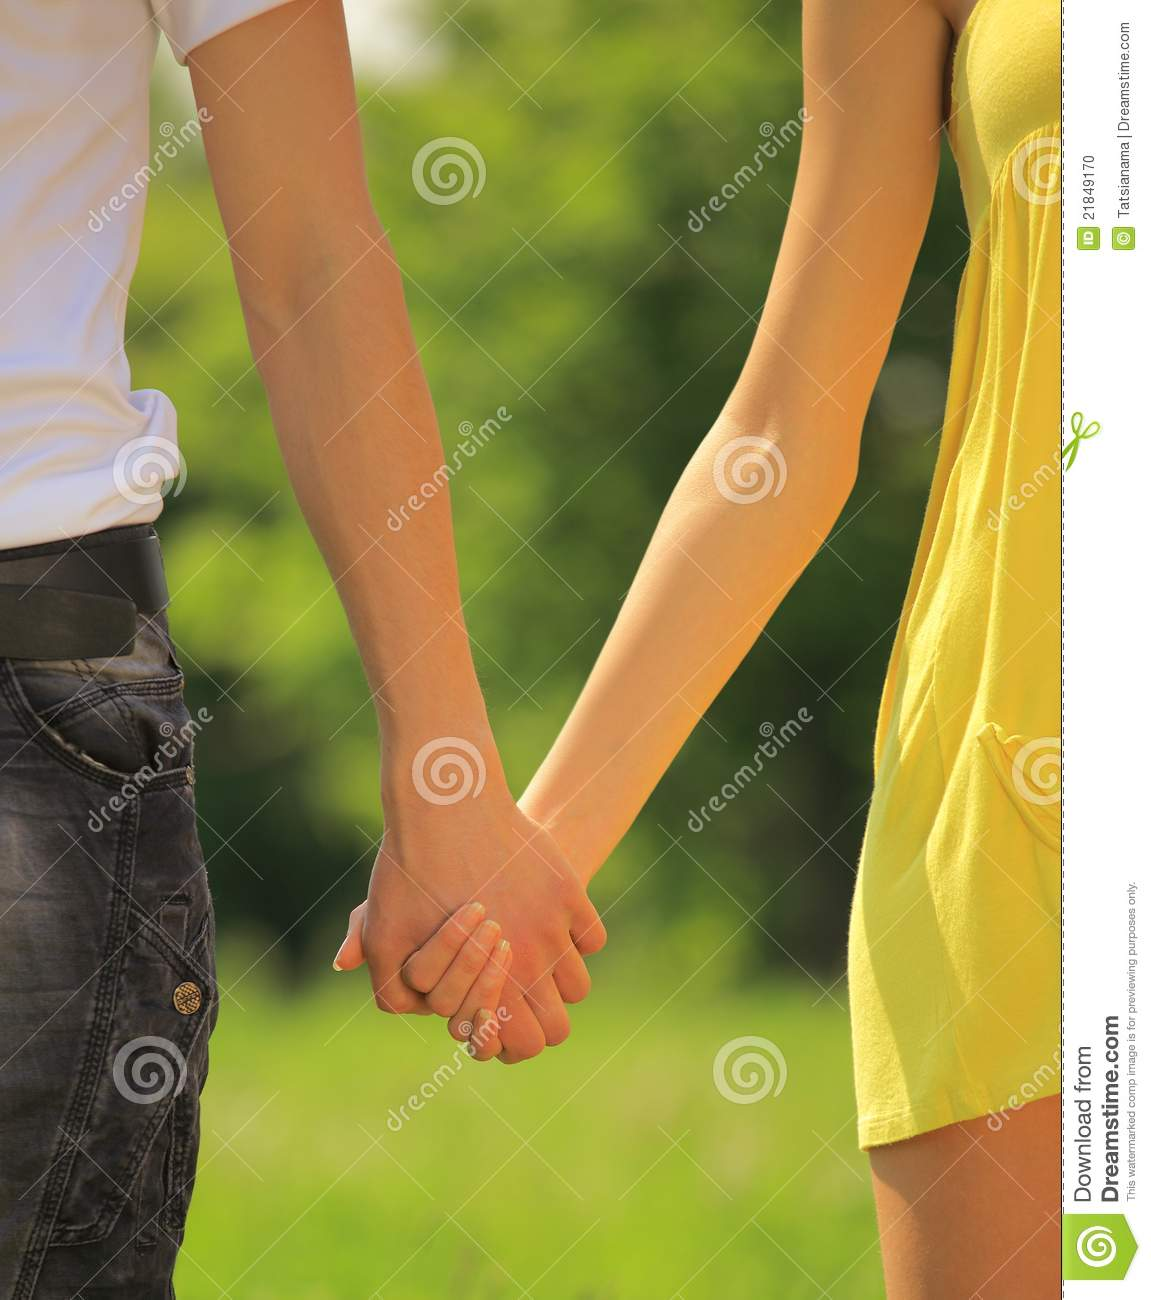 Congratulate, your how to hold a girls hand at the movies